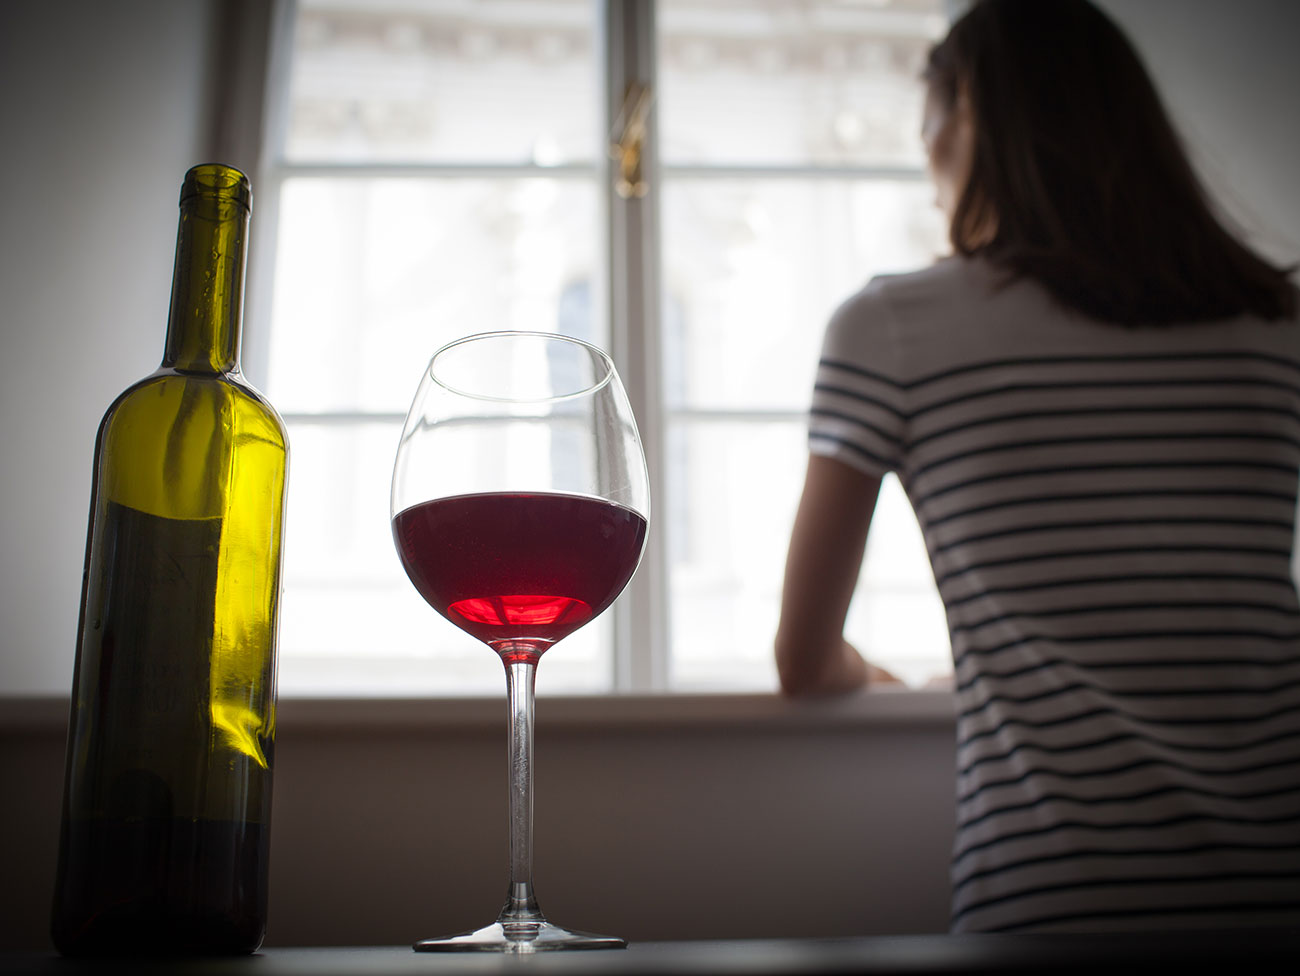 Woman drinking wine alone in a dark room